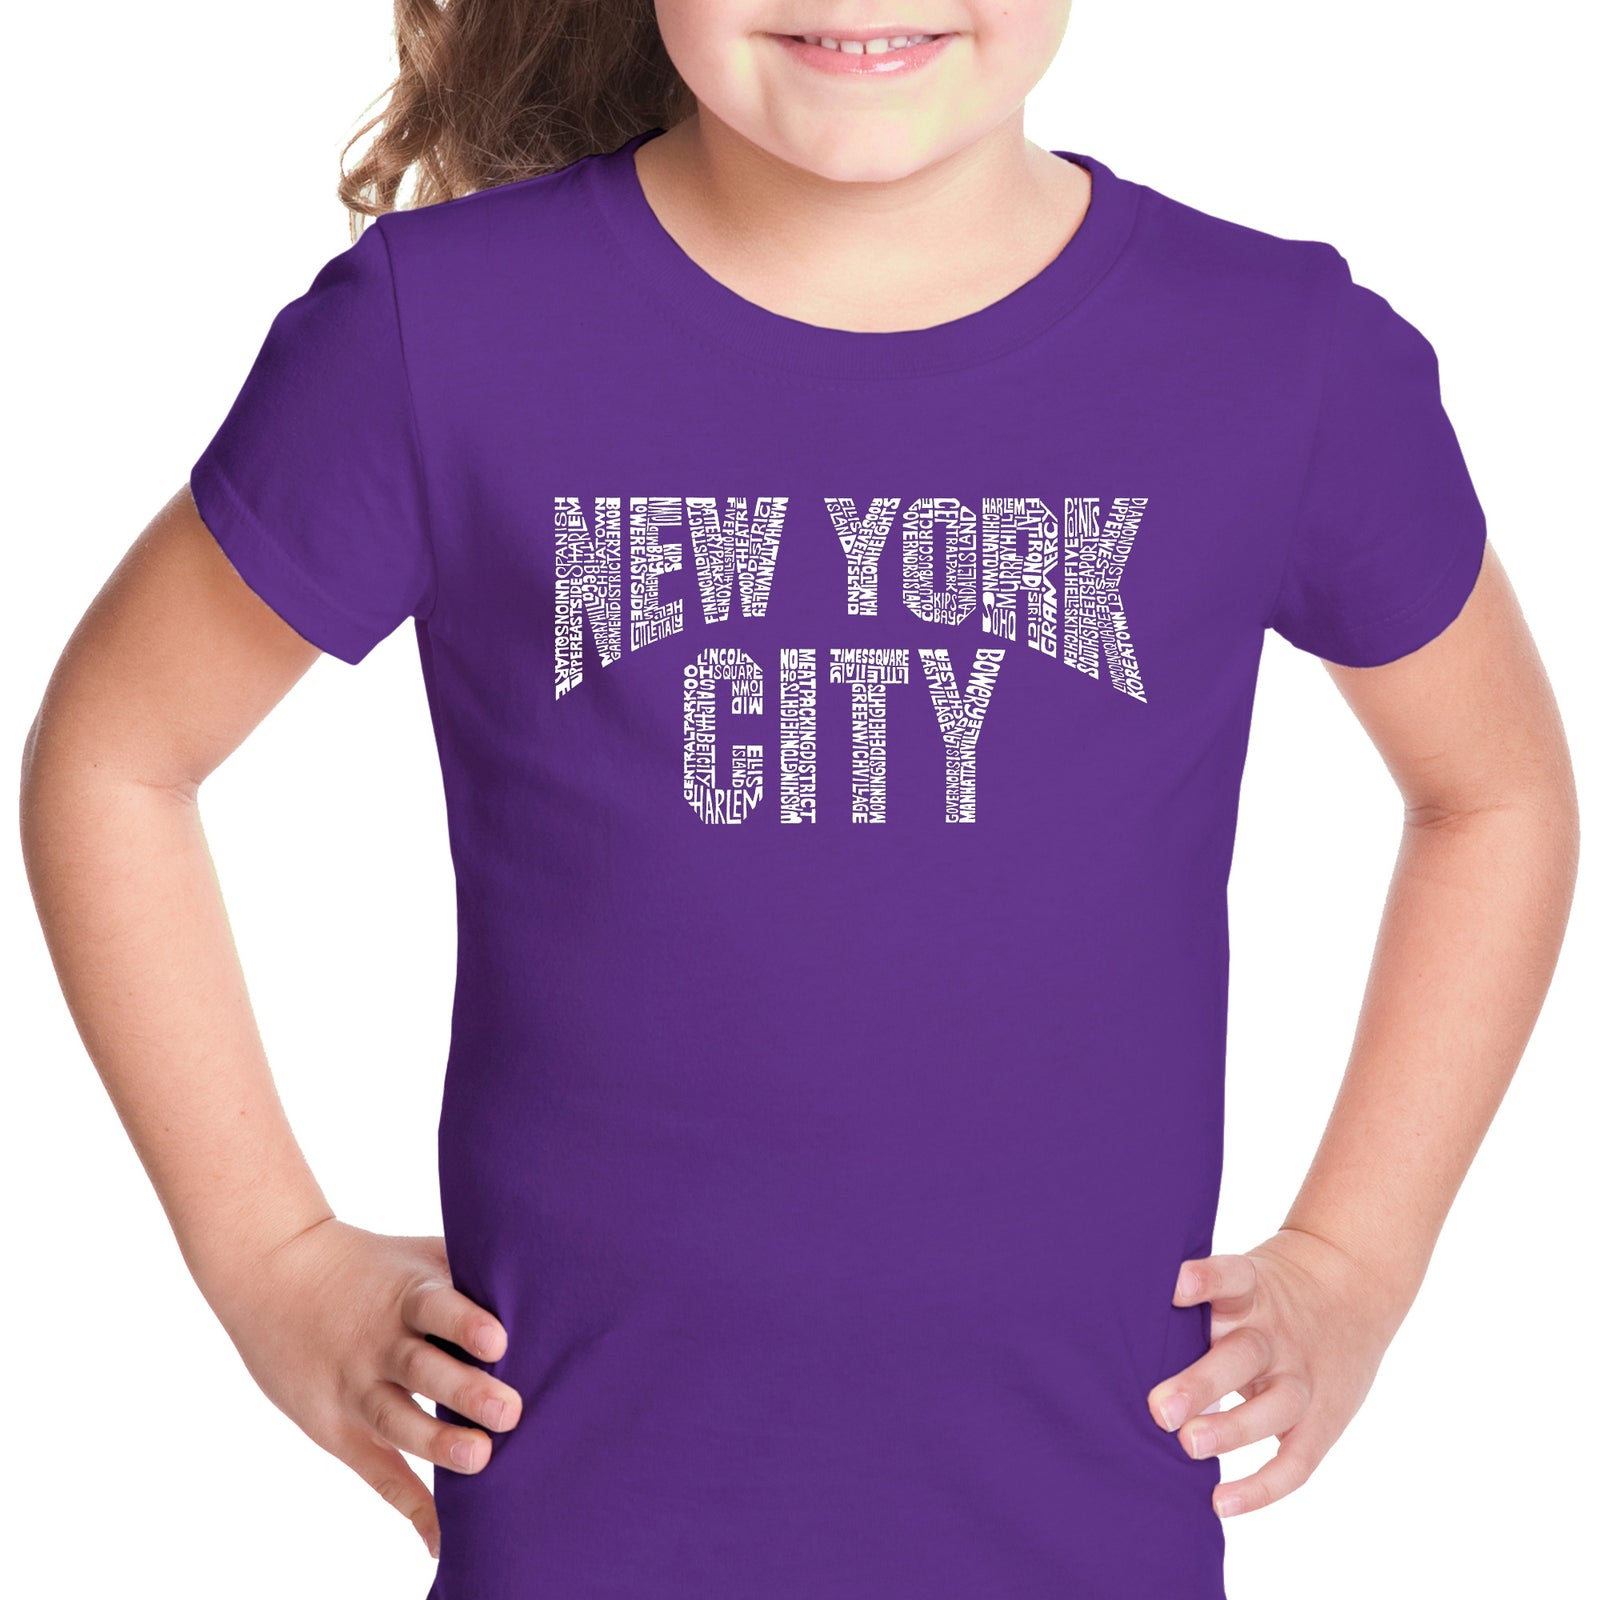 Girl's T-shirt - NYC NEIGHBORHOODS